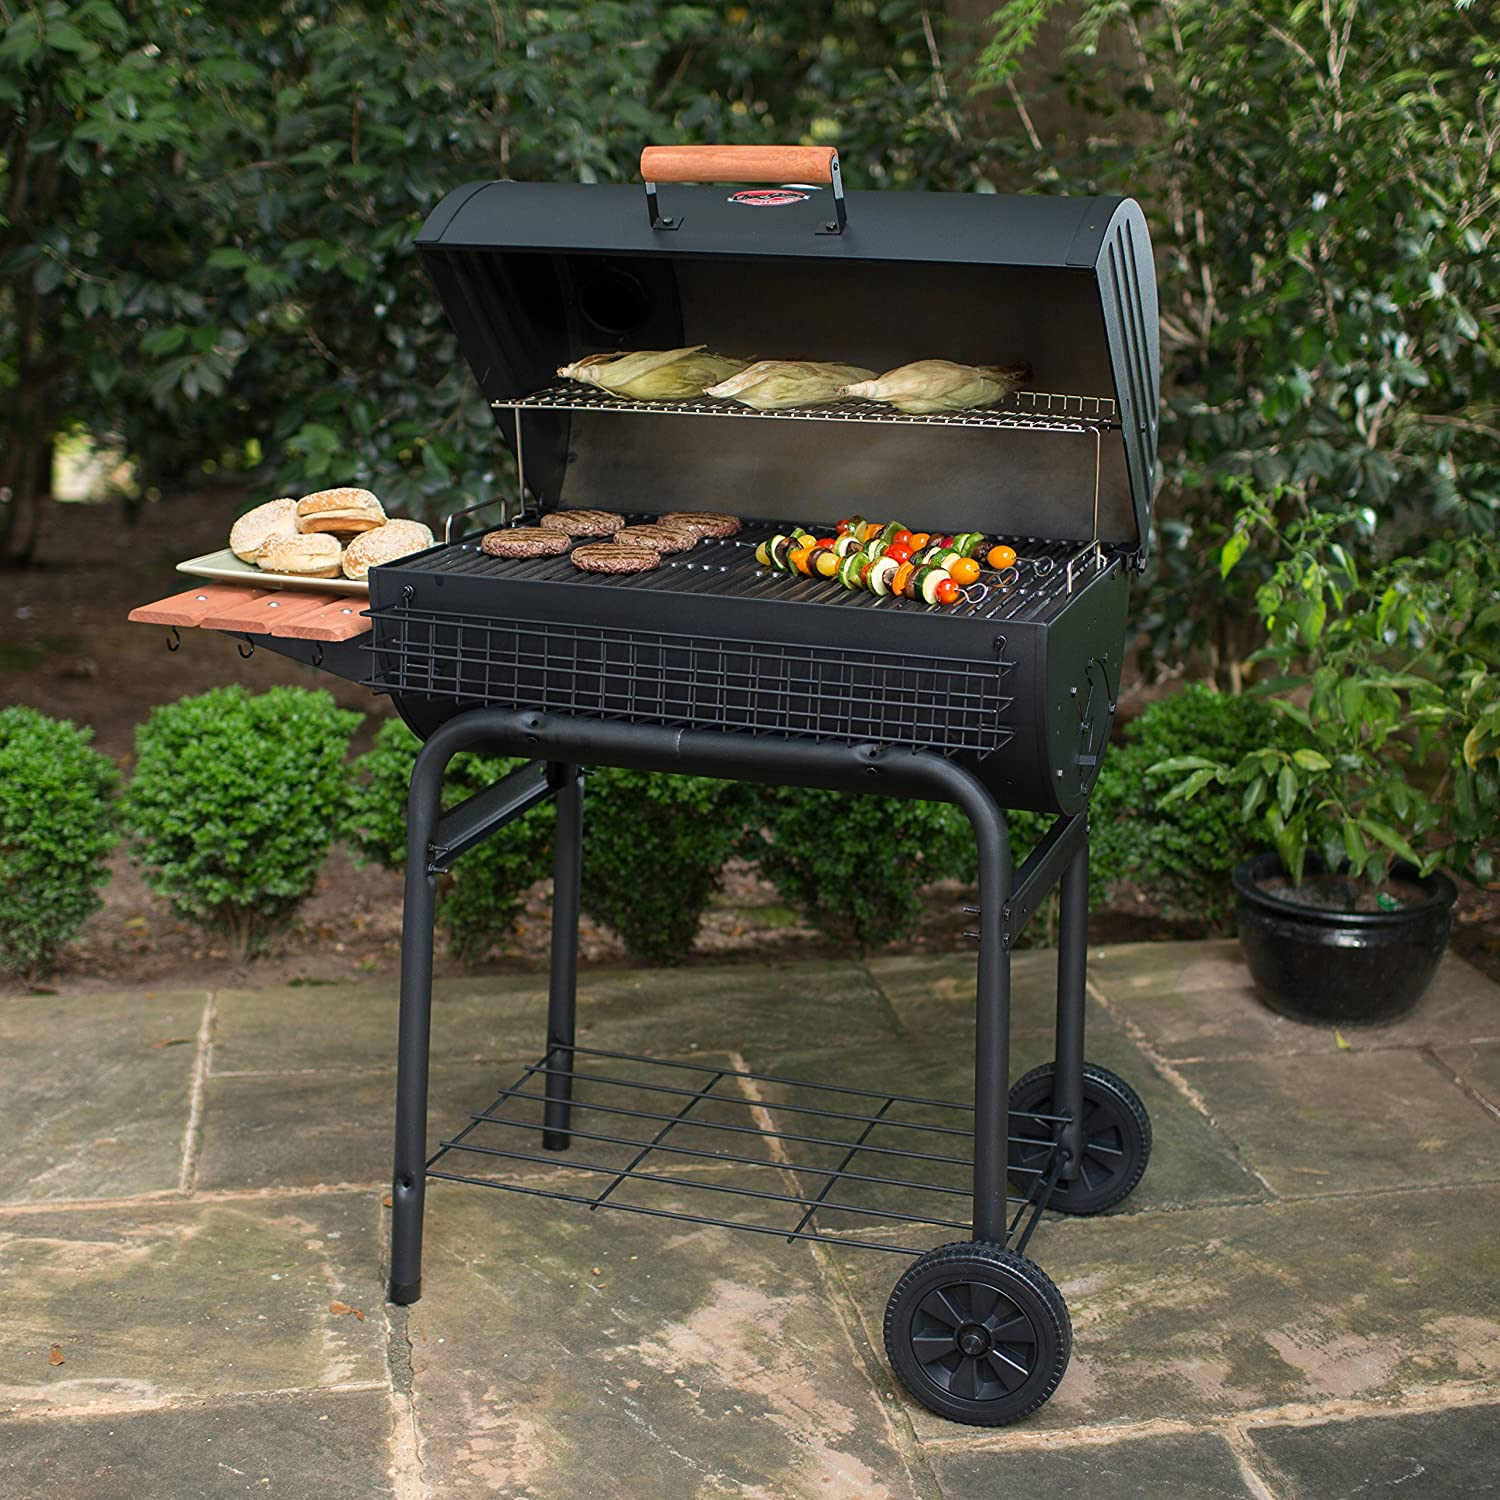 Char griller professional grill and smoker - Amazon Com Char Griller 2828 Pro Deluxe Charcoal Grill Garden Outdoor